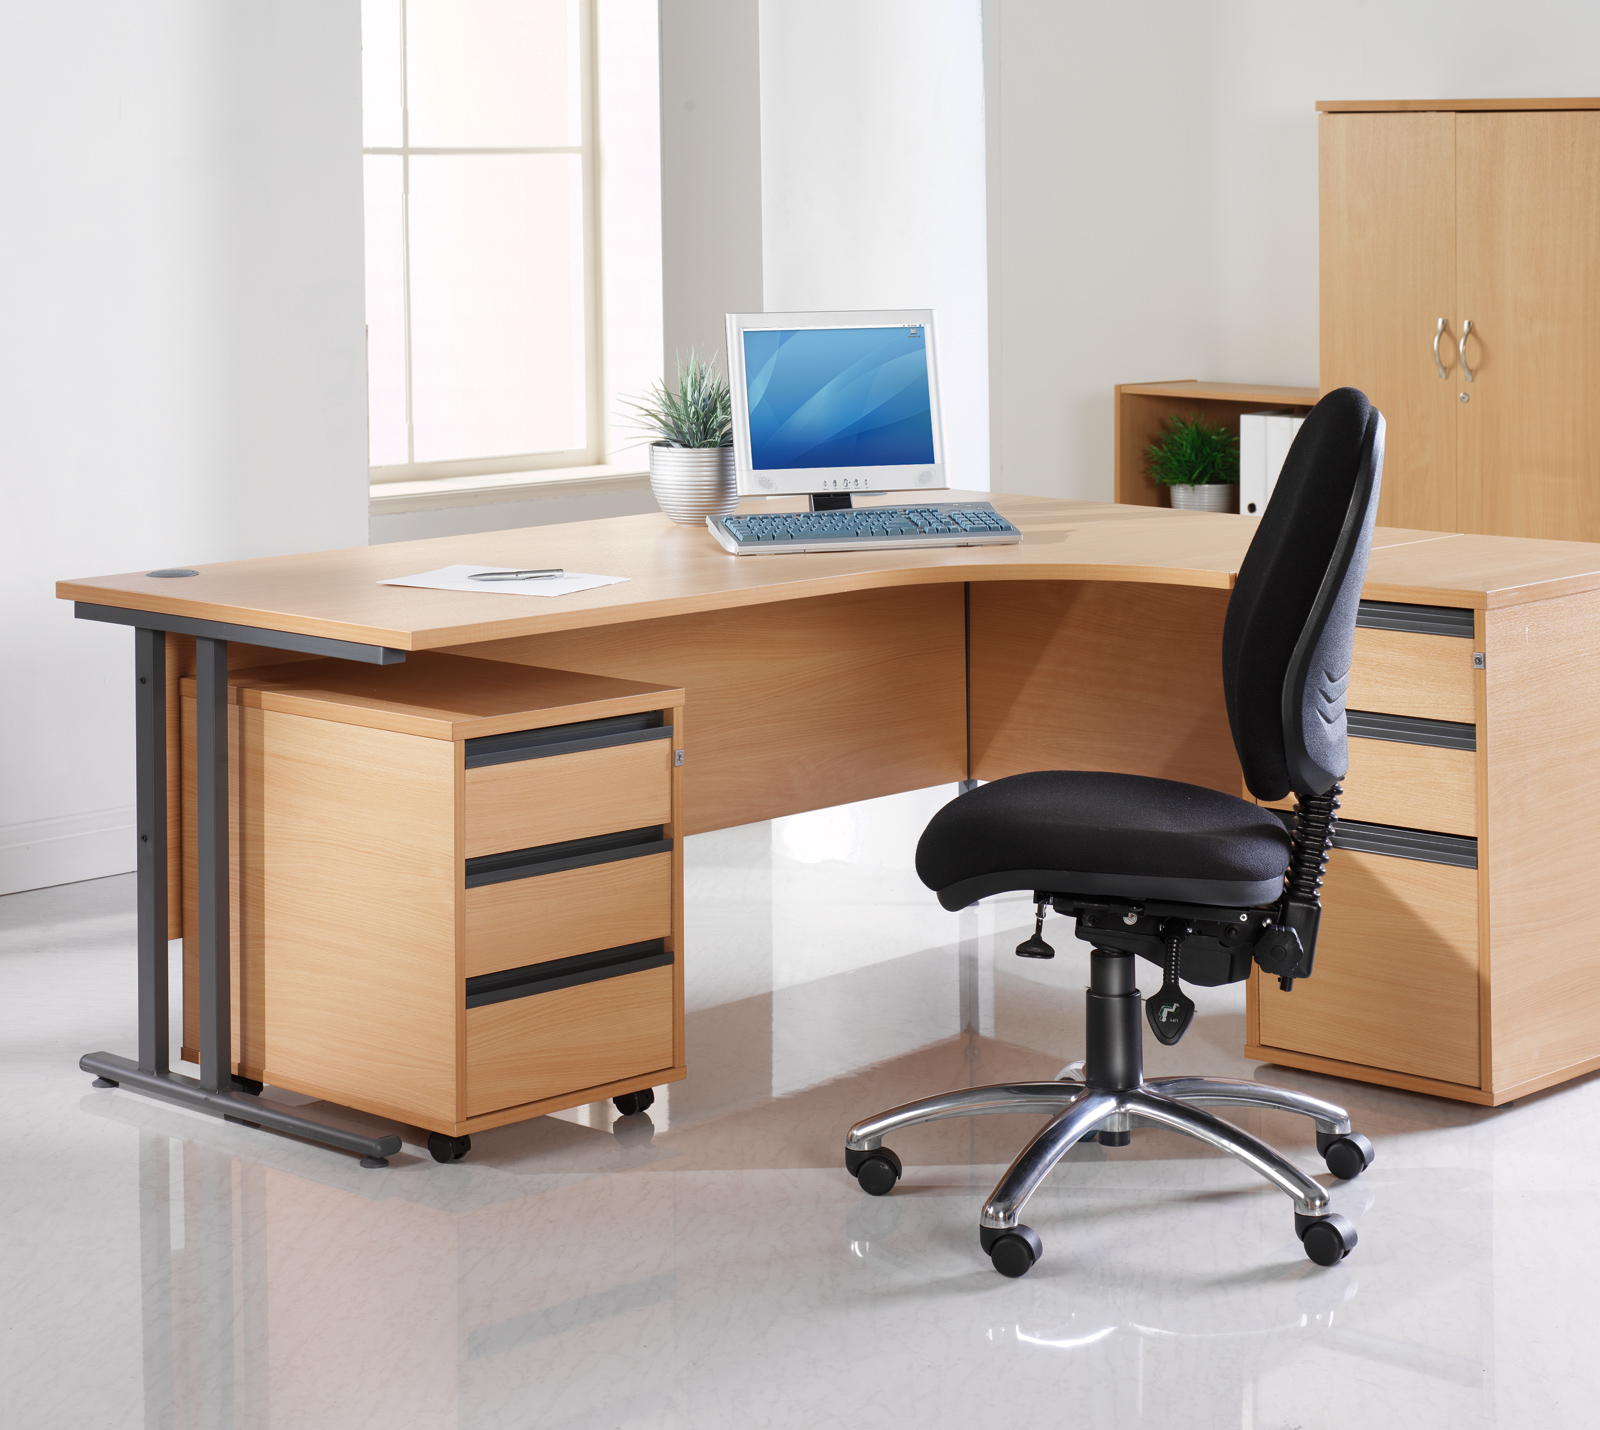 Desk with computer on it and a black swivel chair